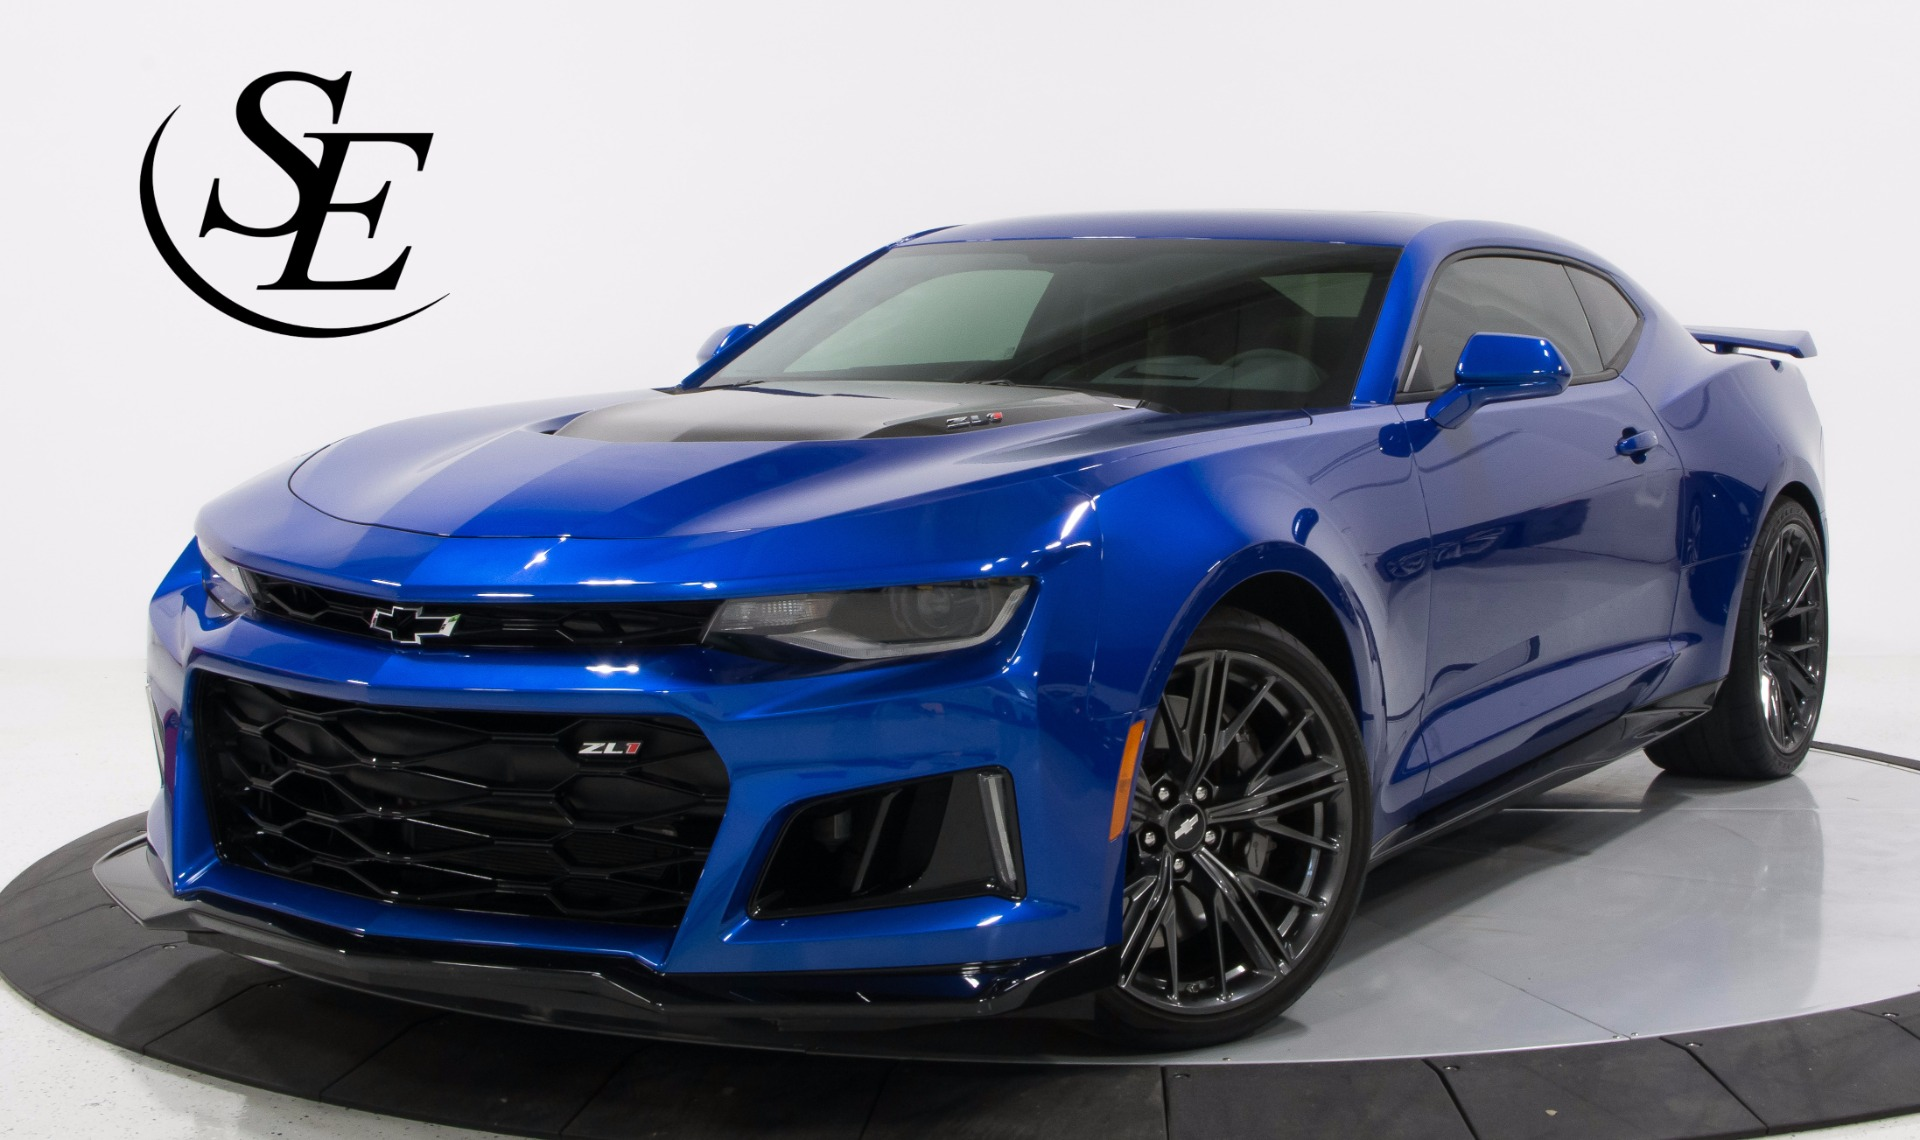 preview 2017 chevrolet camaro zl1 100 images 2018 chevrolet camaro zl1 release date price. Black Bedroom Furniture Sets. Home Design Ideas